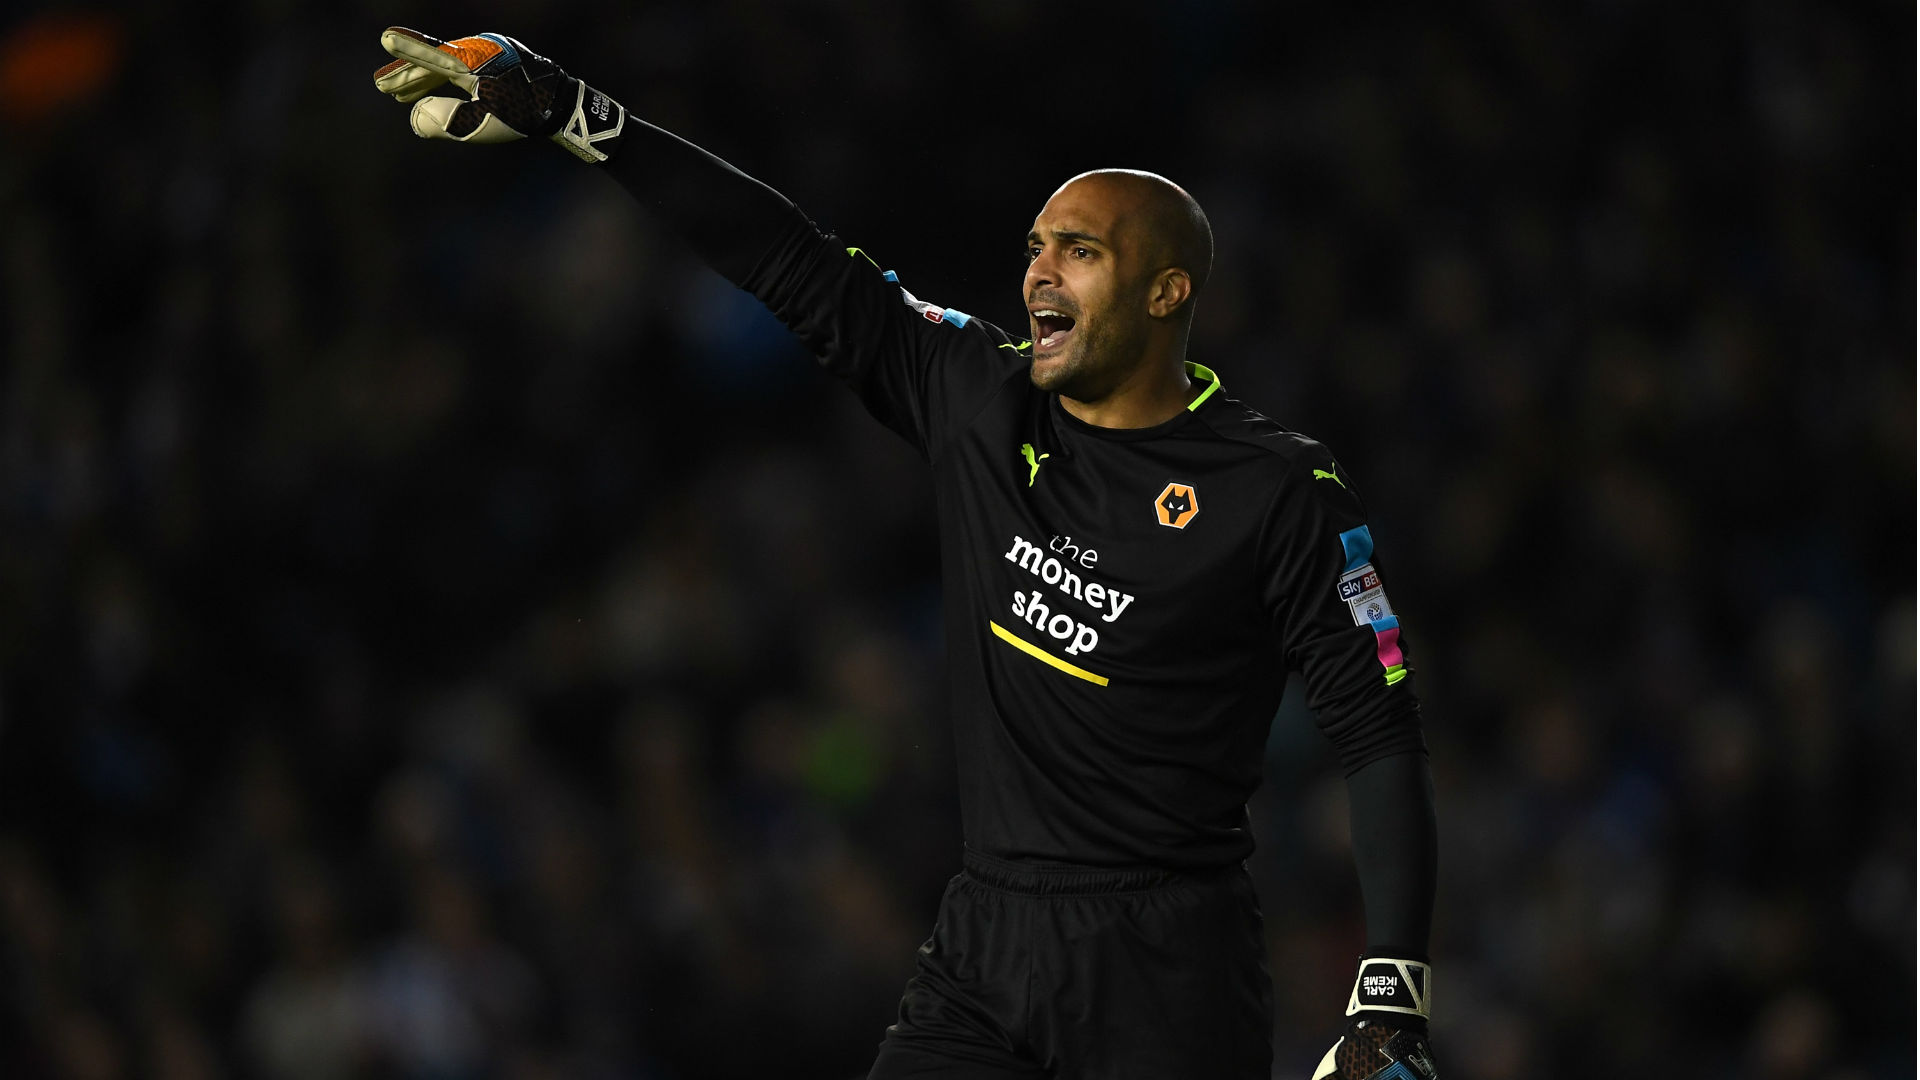 Injured Ikeme Absent As Wolves Train Tuesday In Front Of Fans